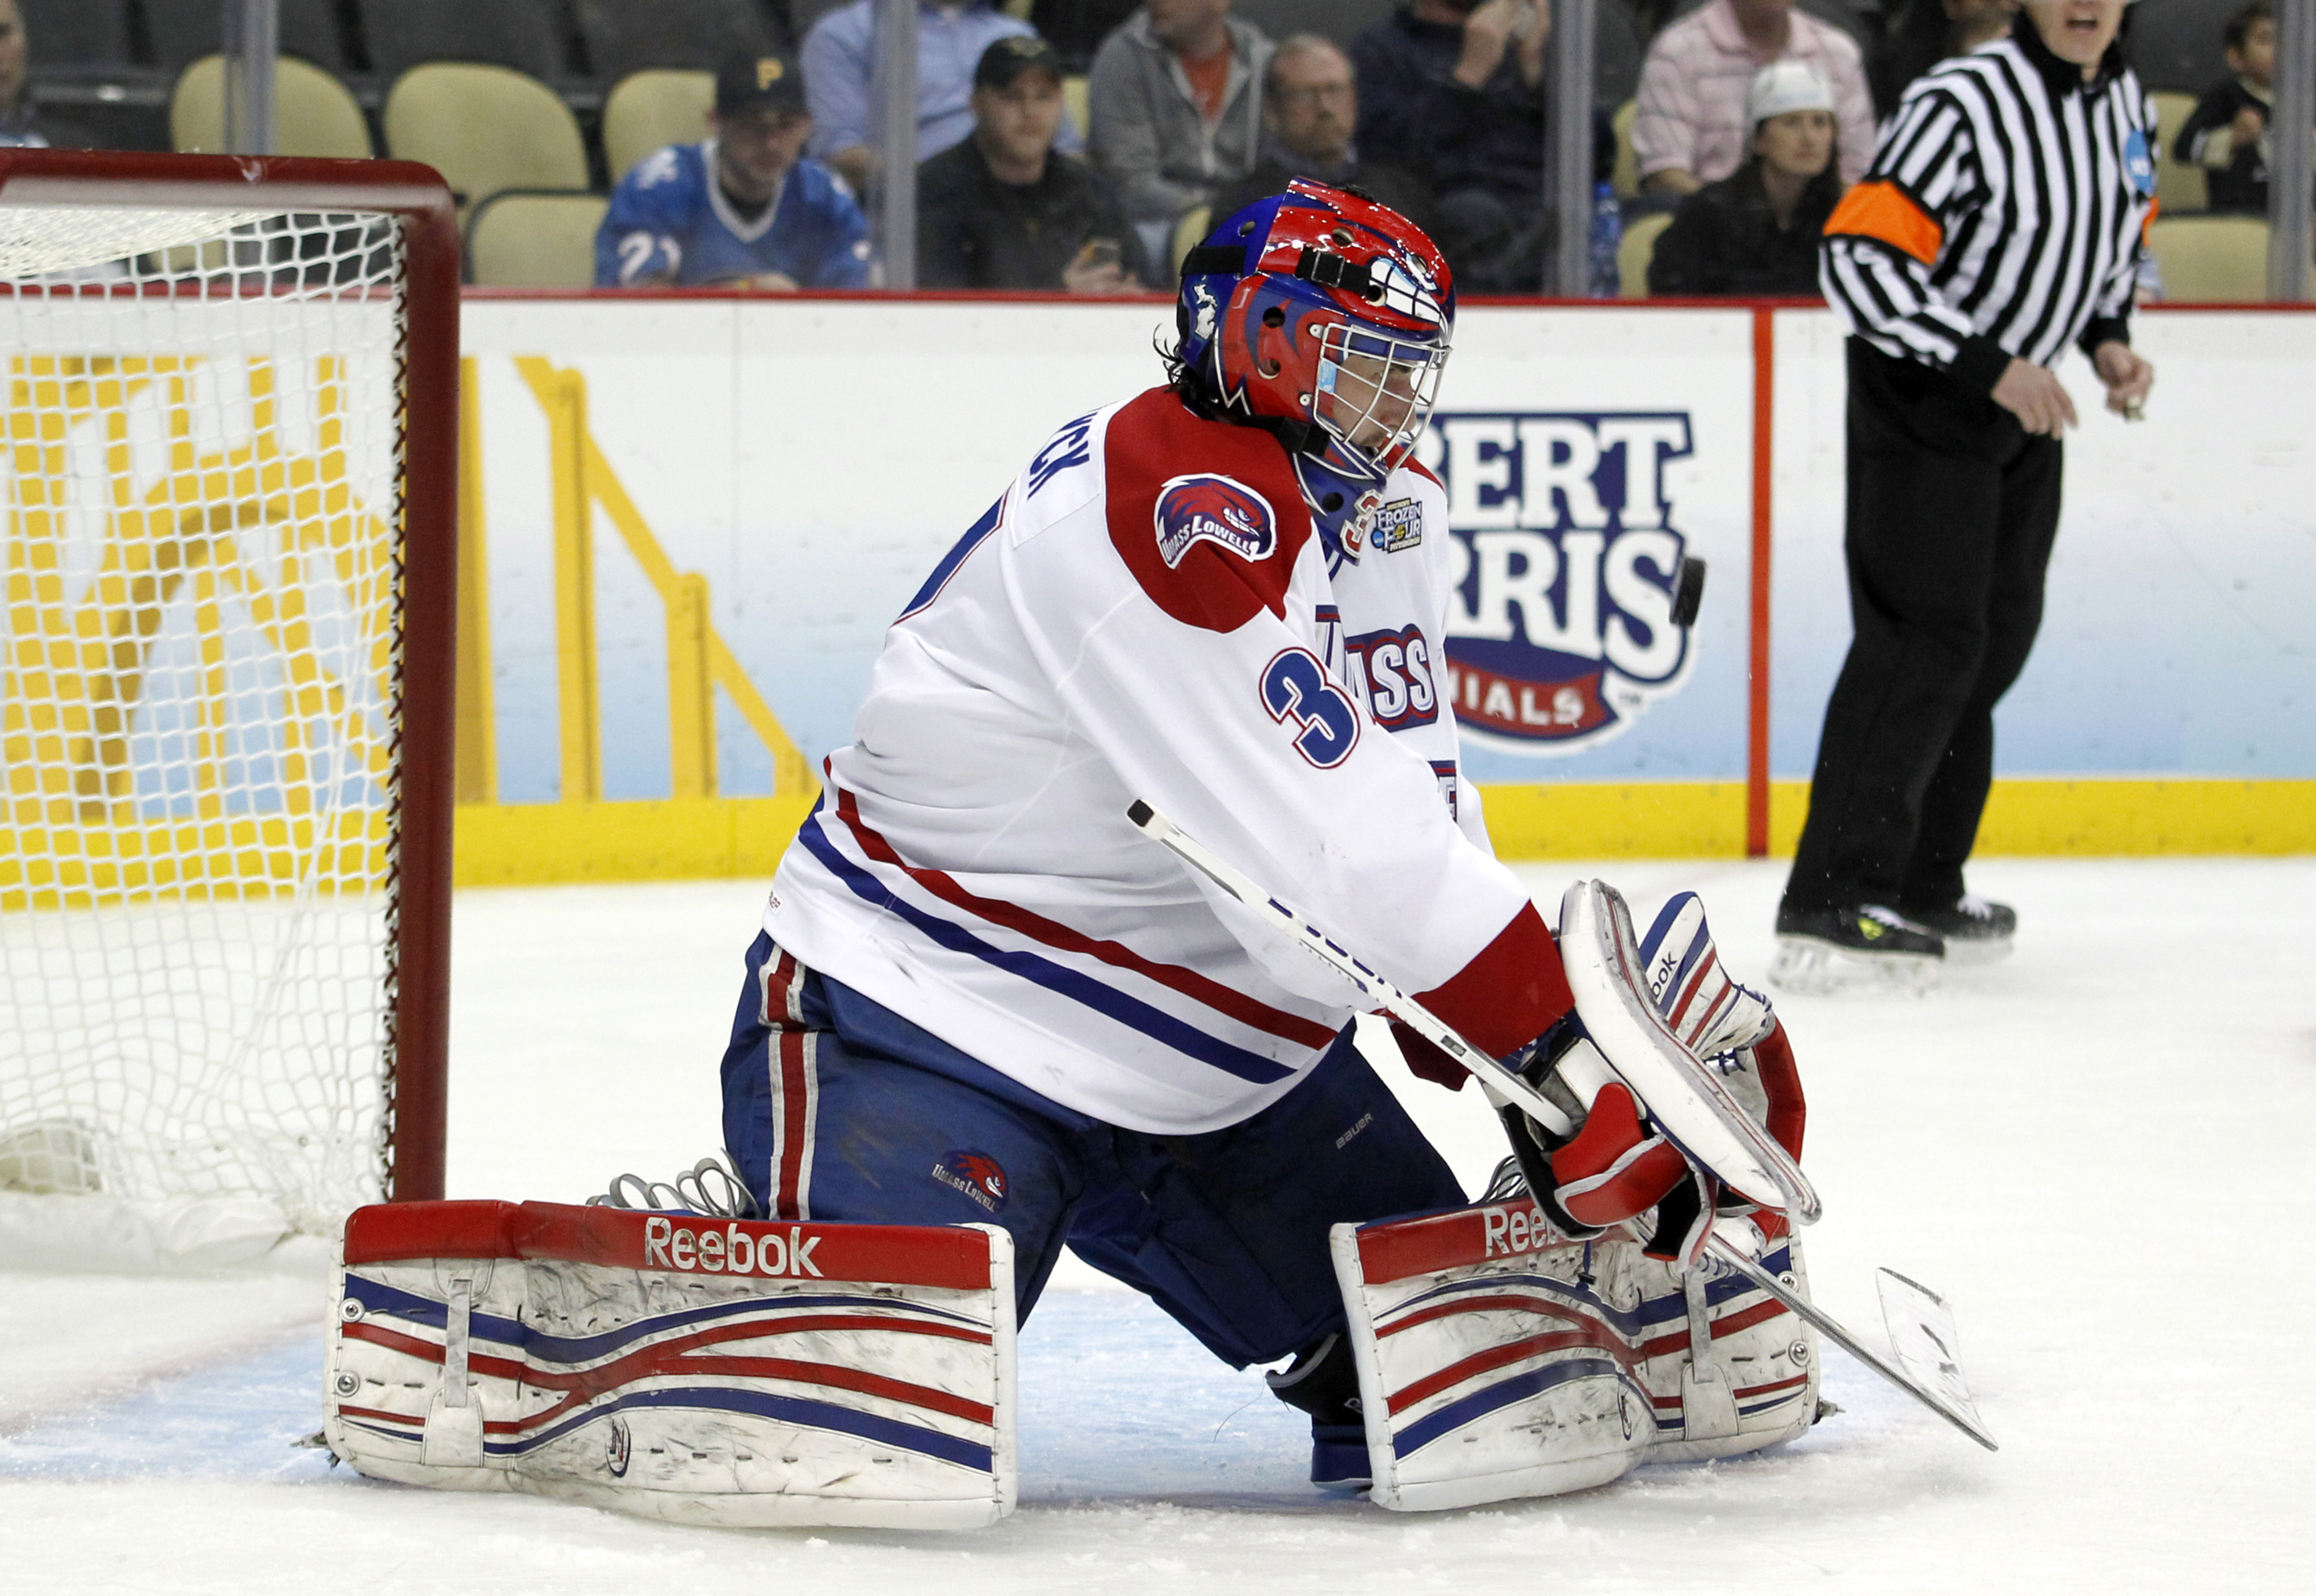 UMass Lowell sophomore goaltender Connor Hellebuyck was named a  Hockey East First Team All-Star.